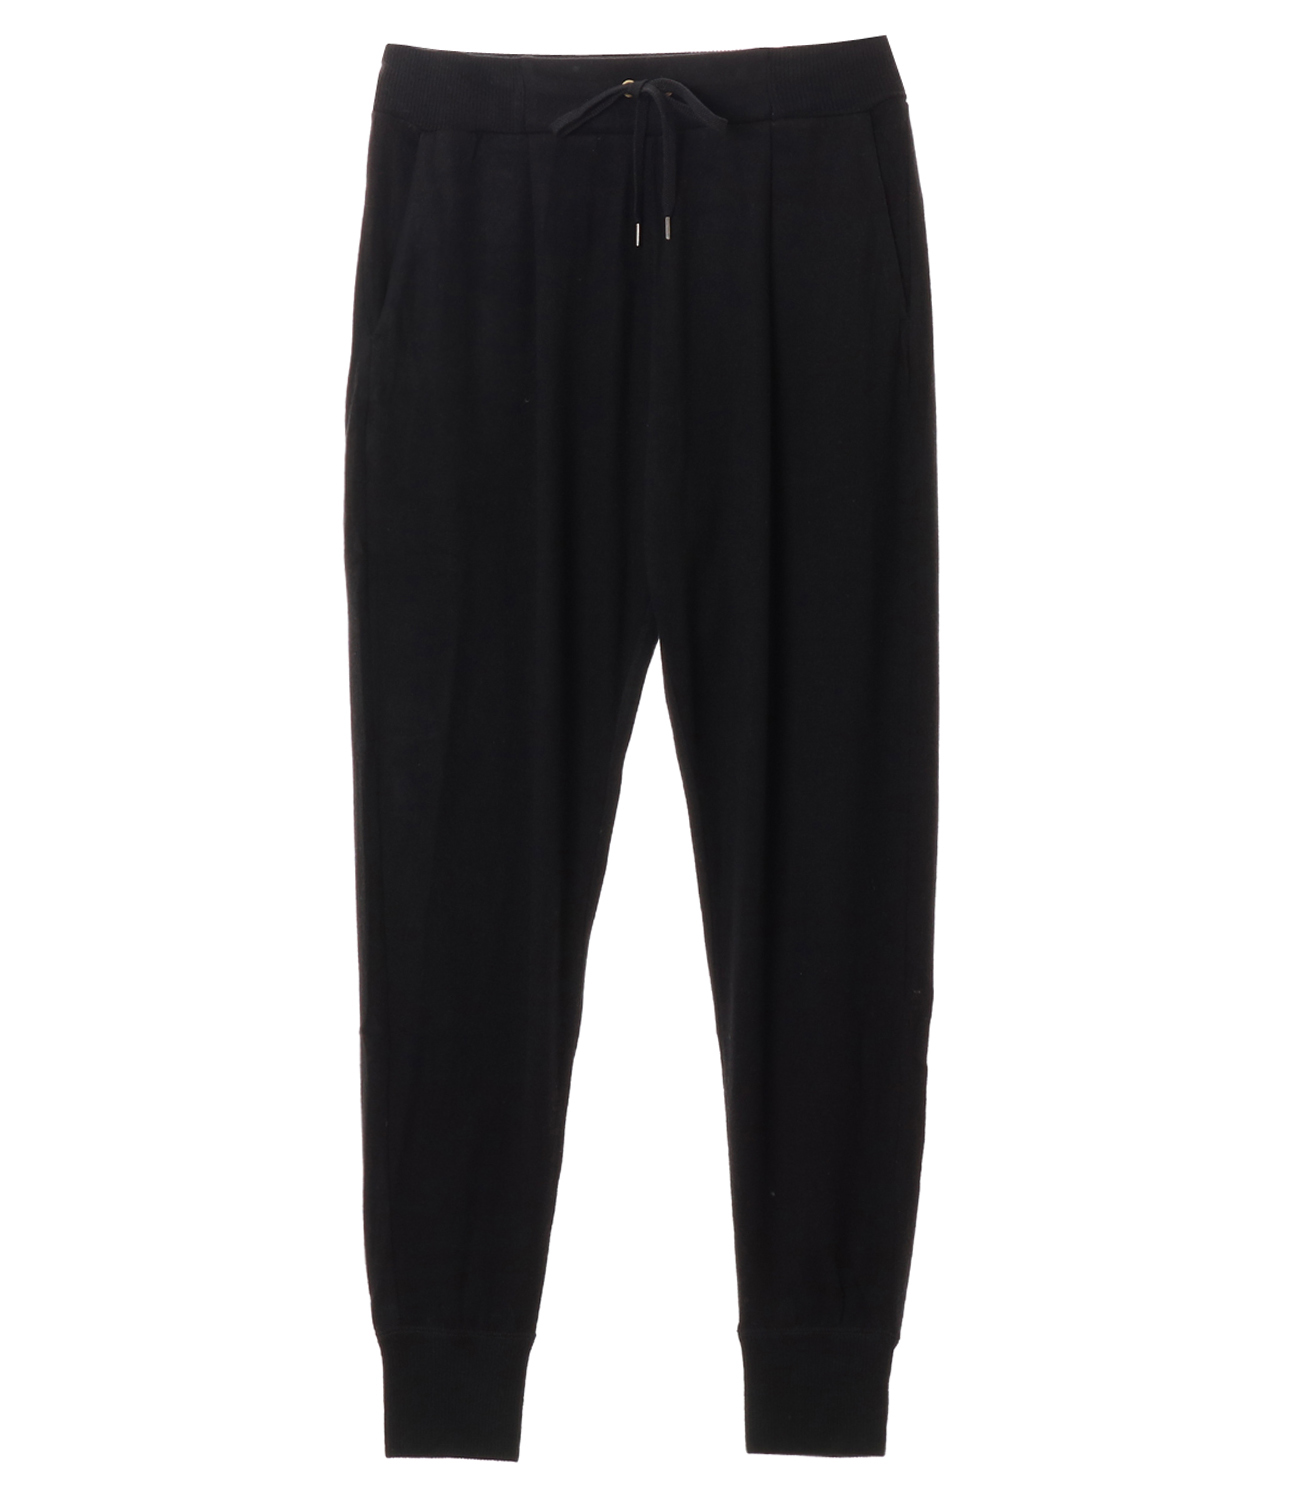 Brushed sweater jogger pant 詳細画像 black 1